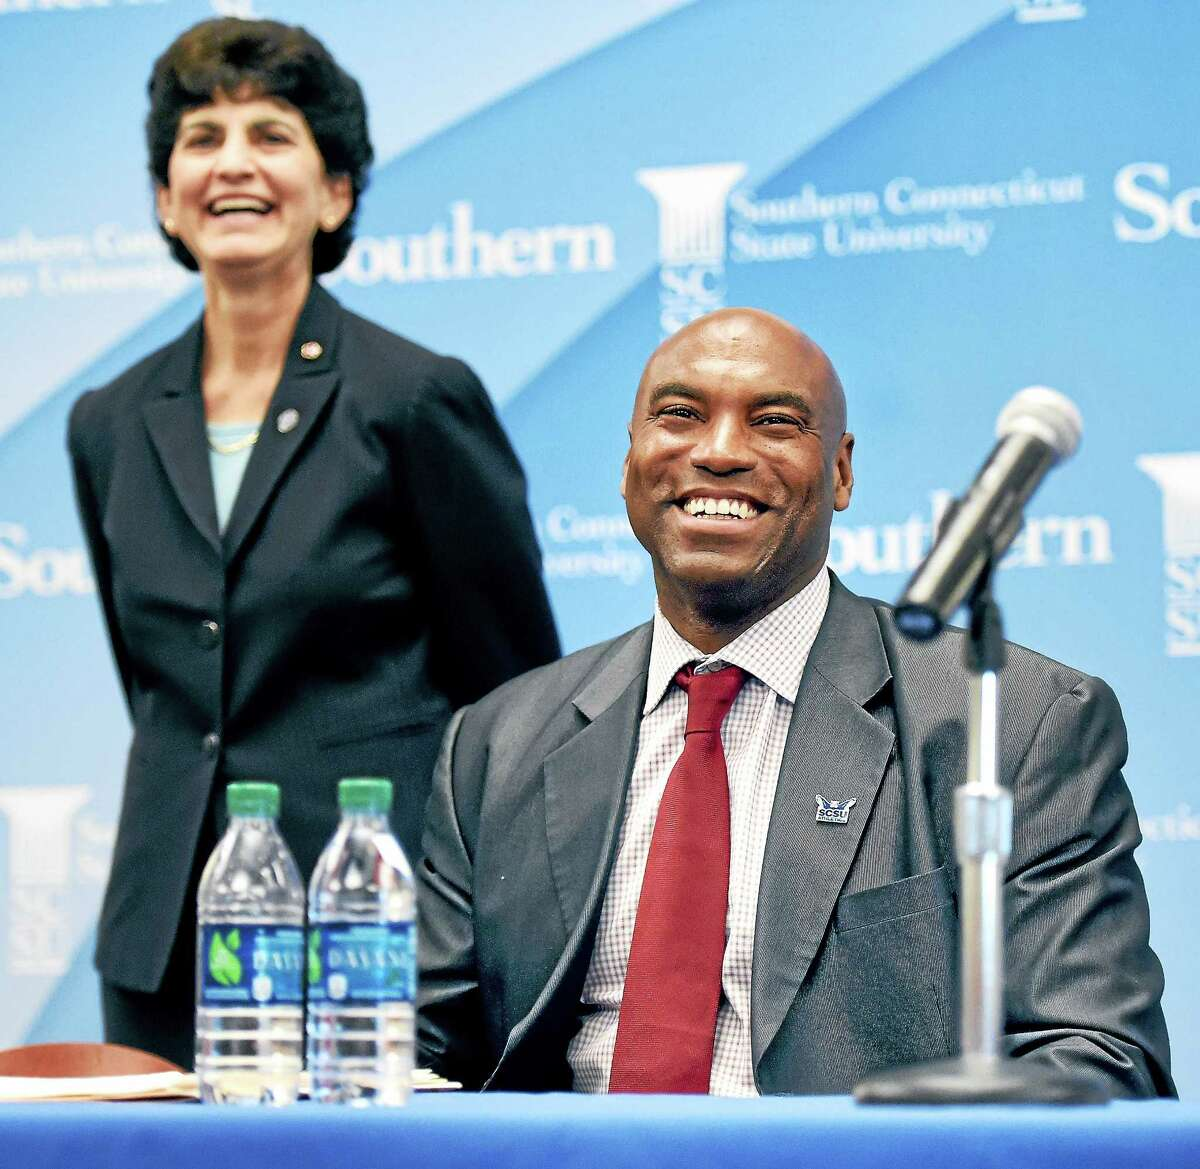 Arnold Gold — Register Southern Connecticut State President Mary Papazian, left, and Scott Burrell share a laugh during the press conference announcing Burrell as the new Southern Connecticut State men's basketball coach.